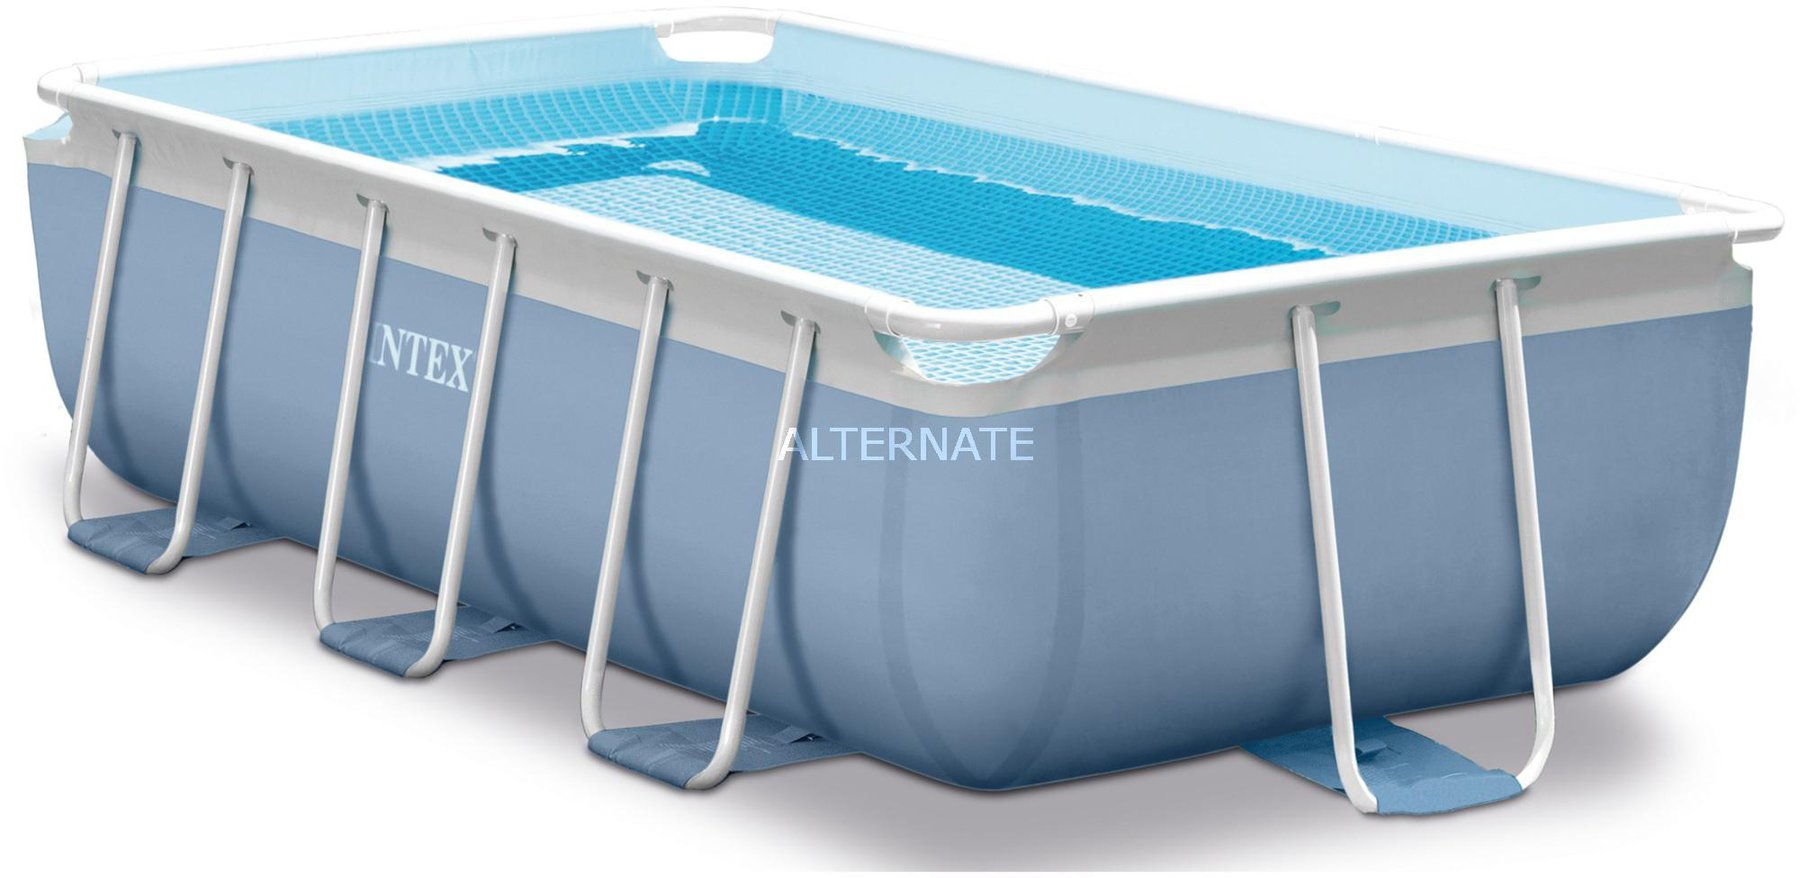 Pool Sandfilteranlage Abstand Intex Pools Prism Frame 488 X 244 X 107 Cm 28318fr